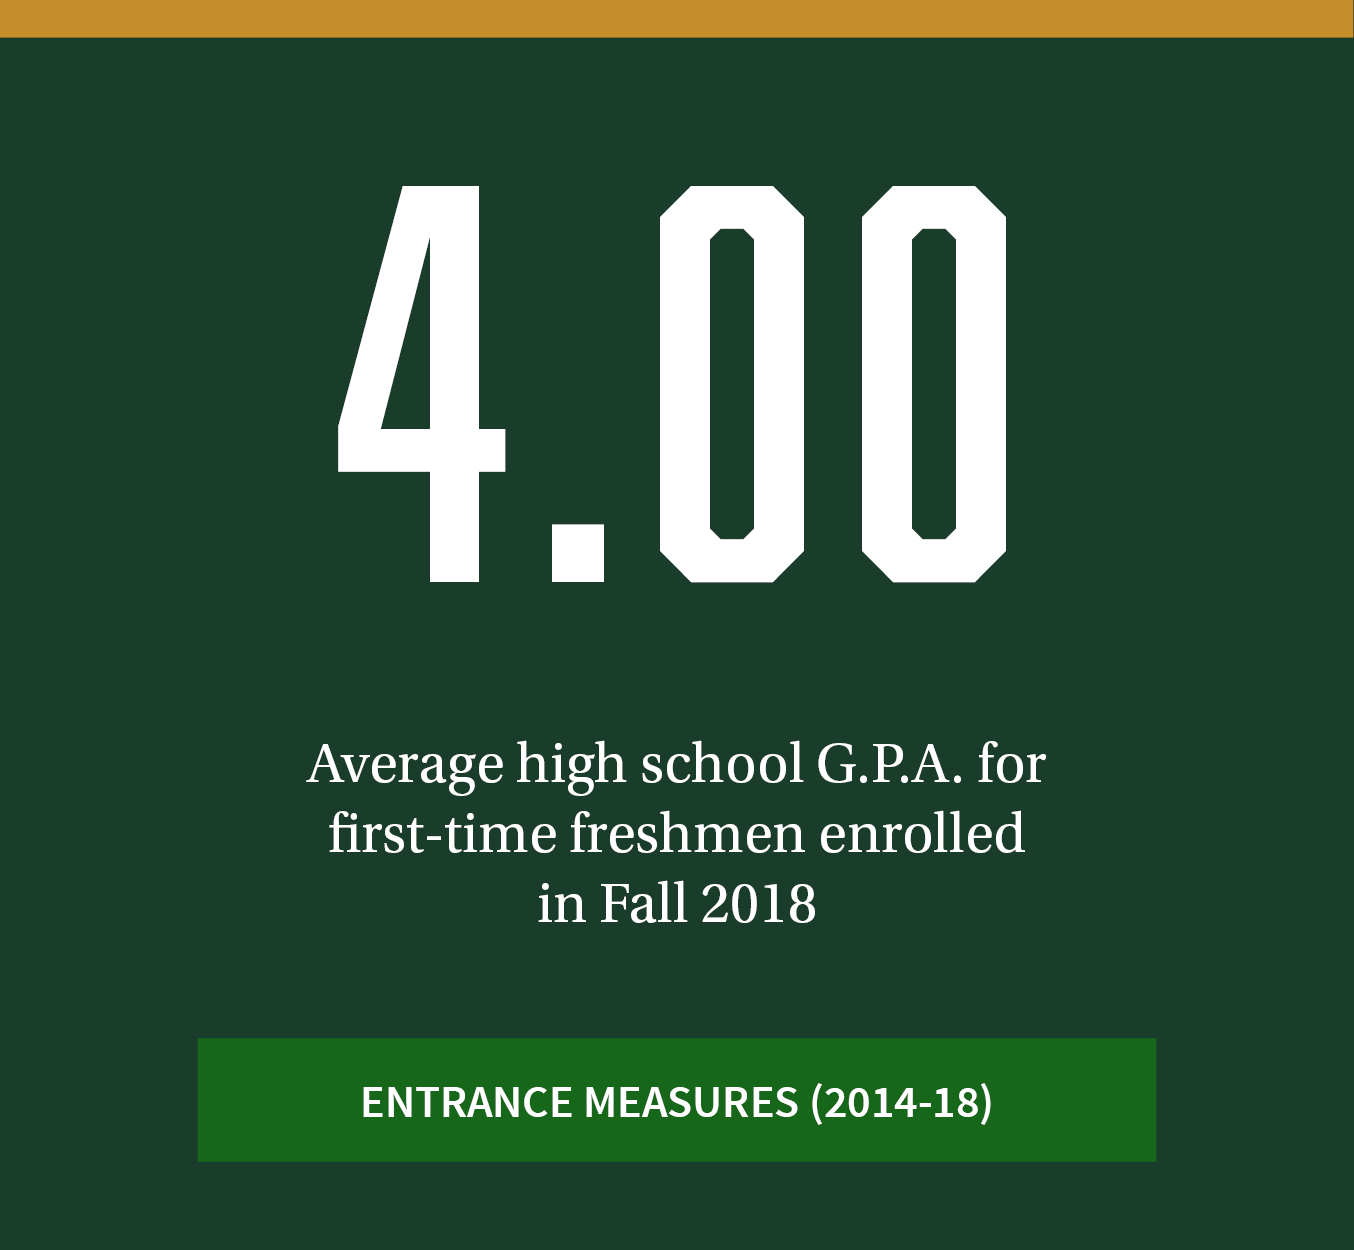 4.00. Average high school G.P.A. for first-time freshmen enrolled in fall 2018. Click to see more entrance measure trends between 2014-18.